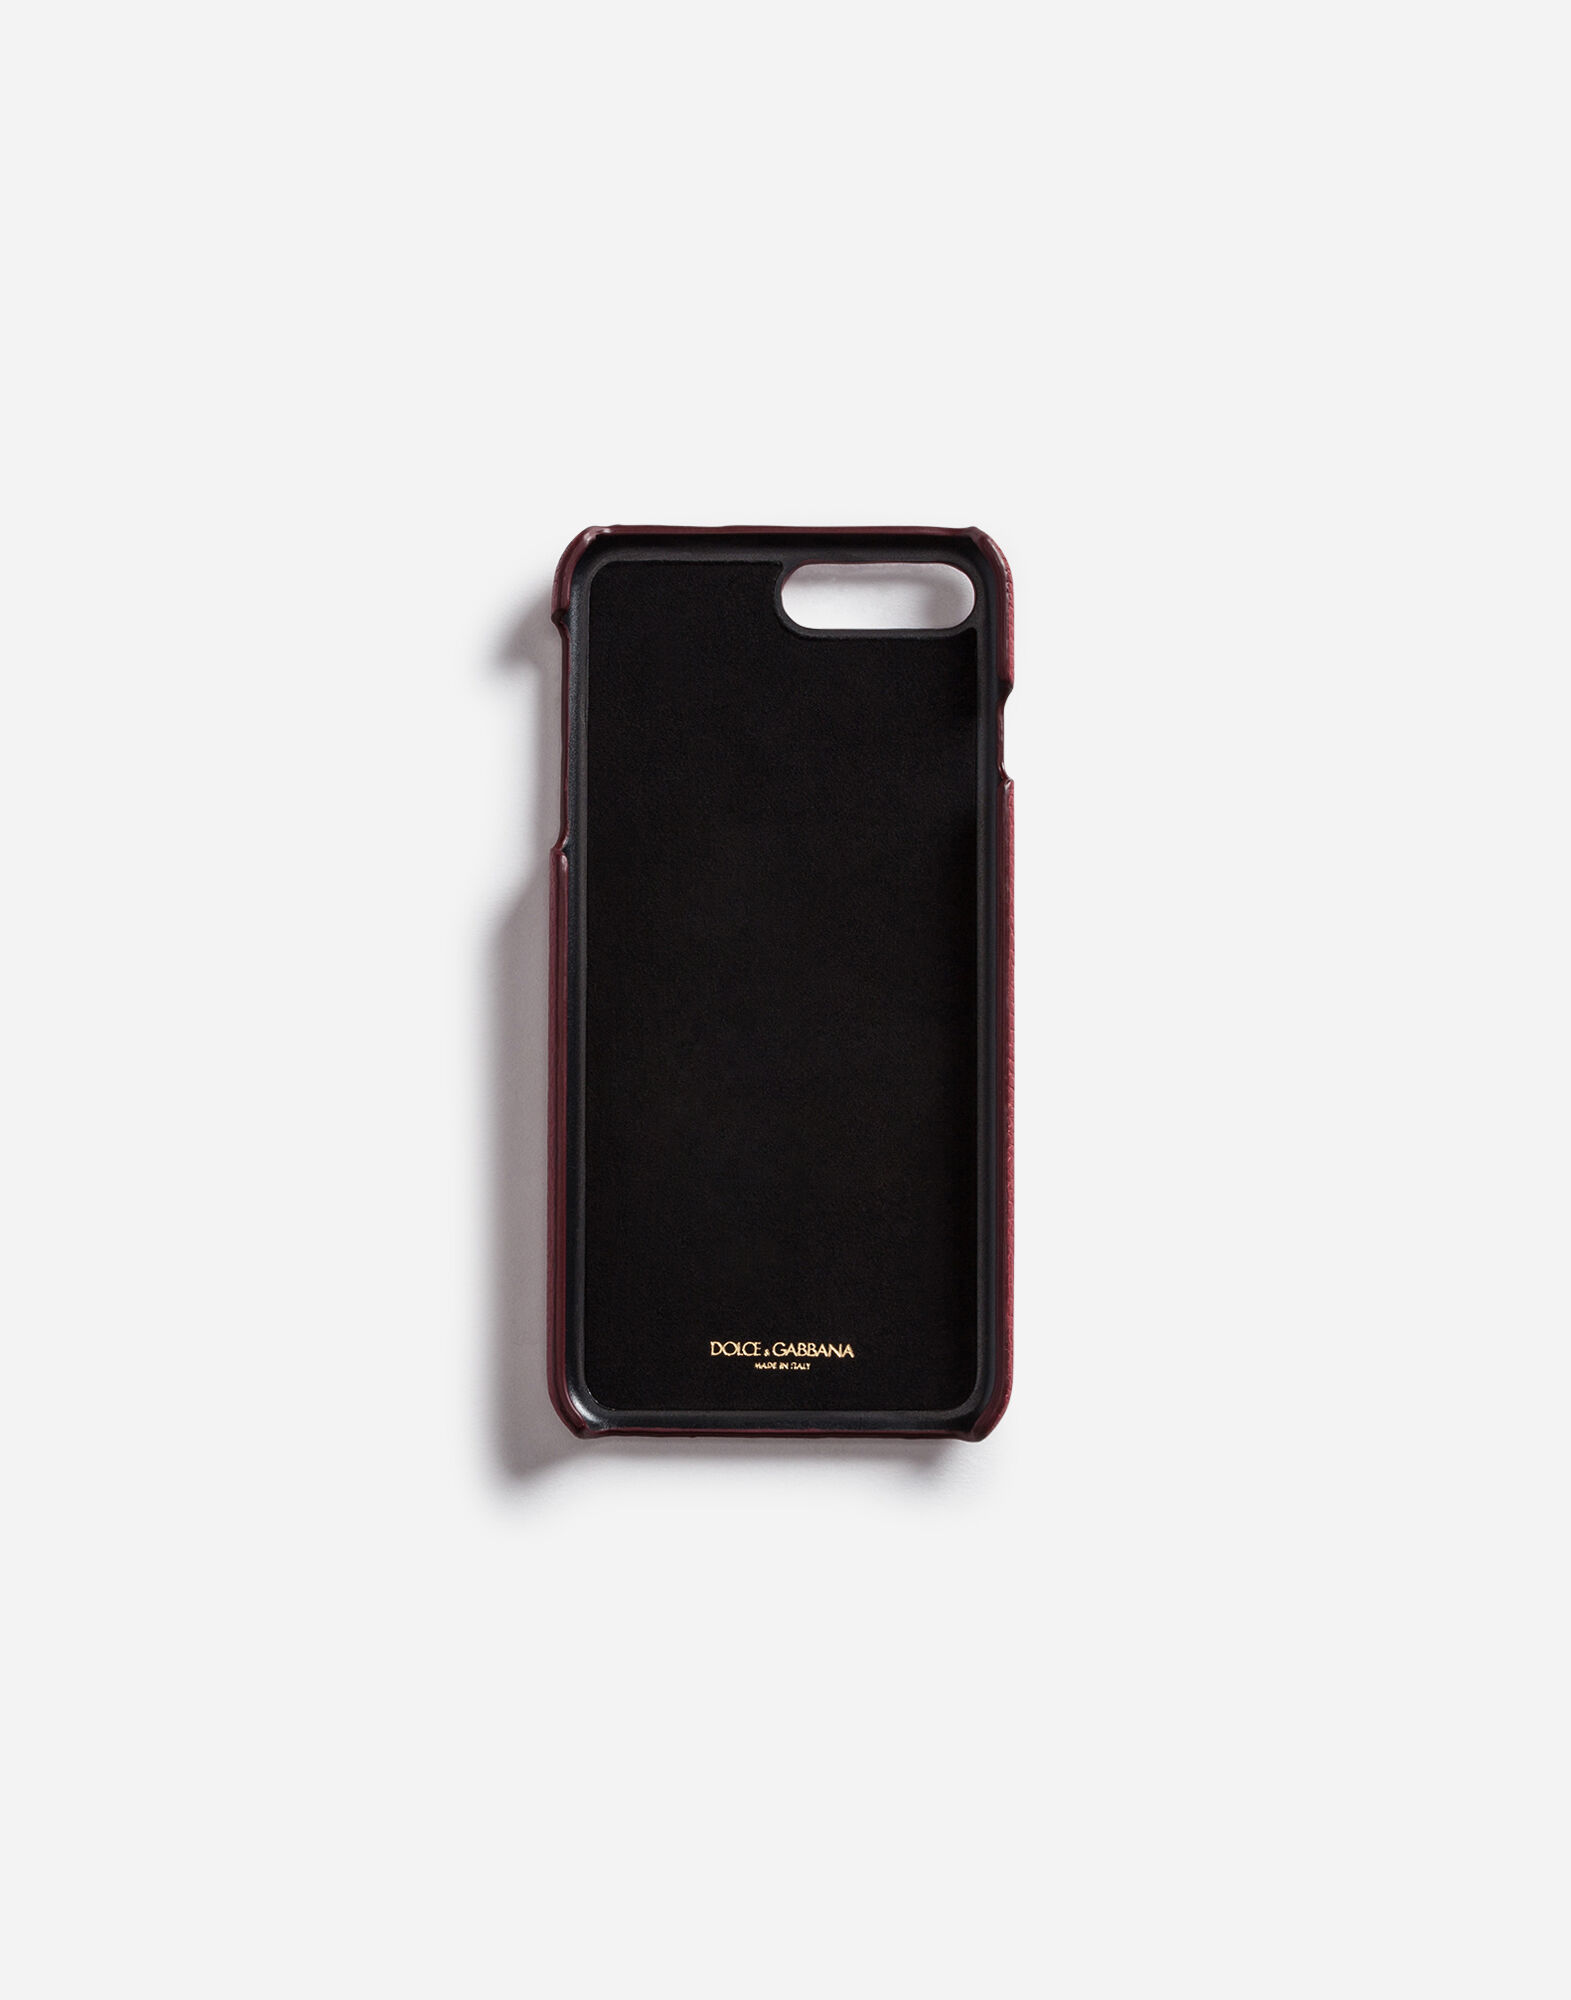 IPHONE 7 PLUS COVER WITH PATCHES OF THE DESIGNERS